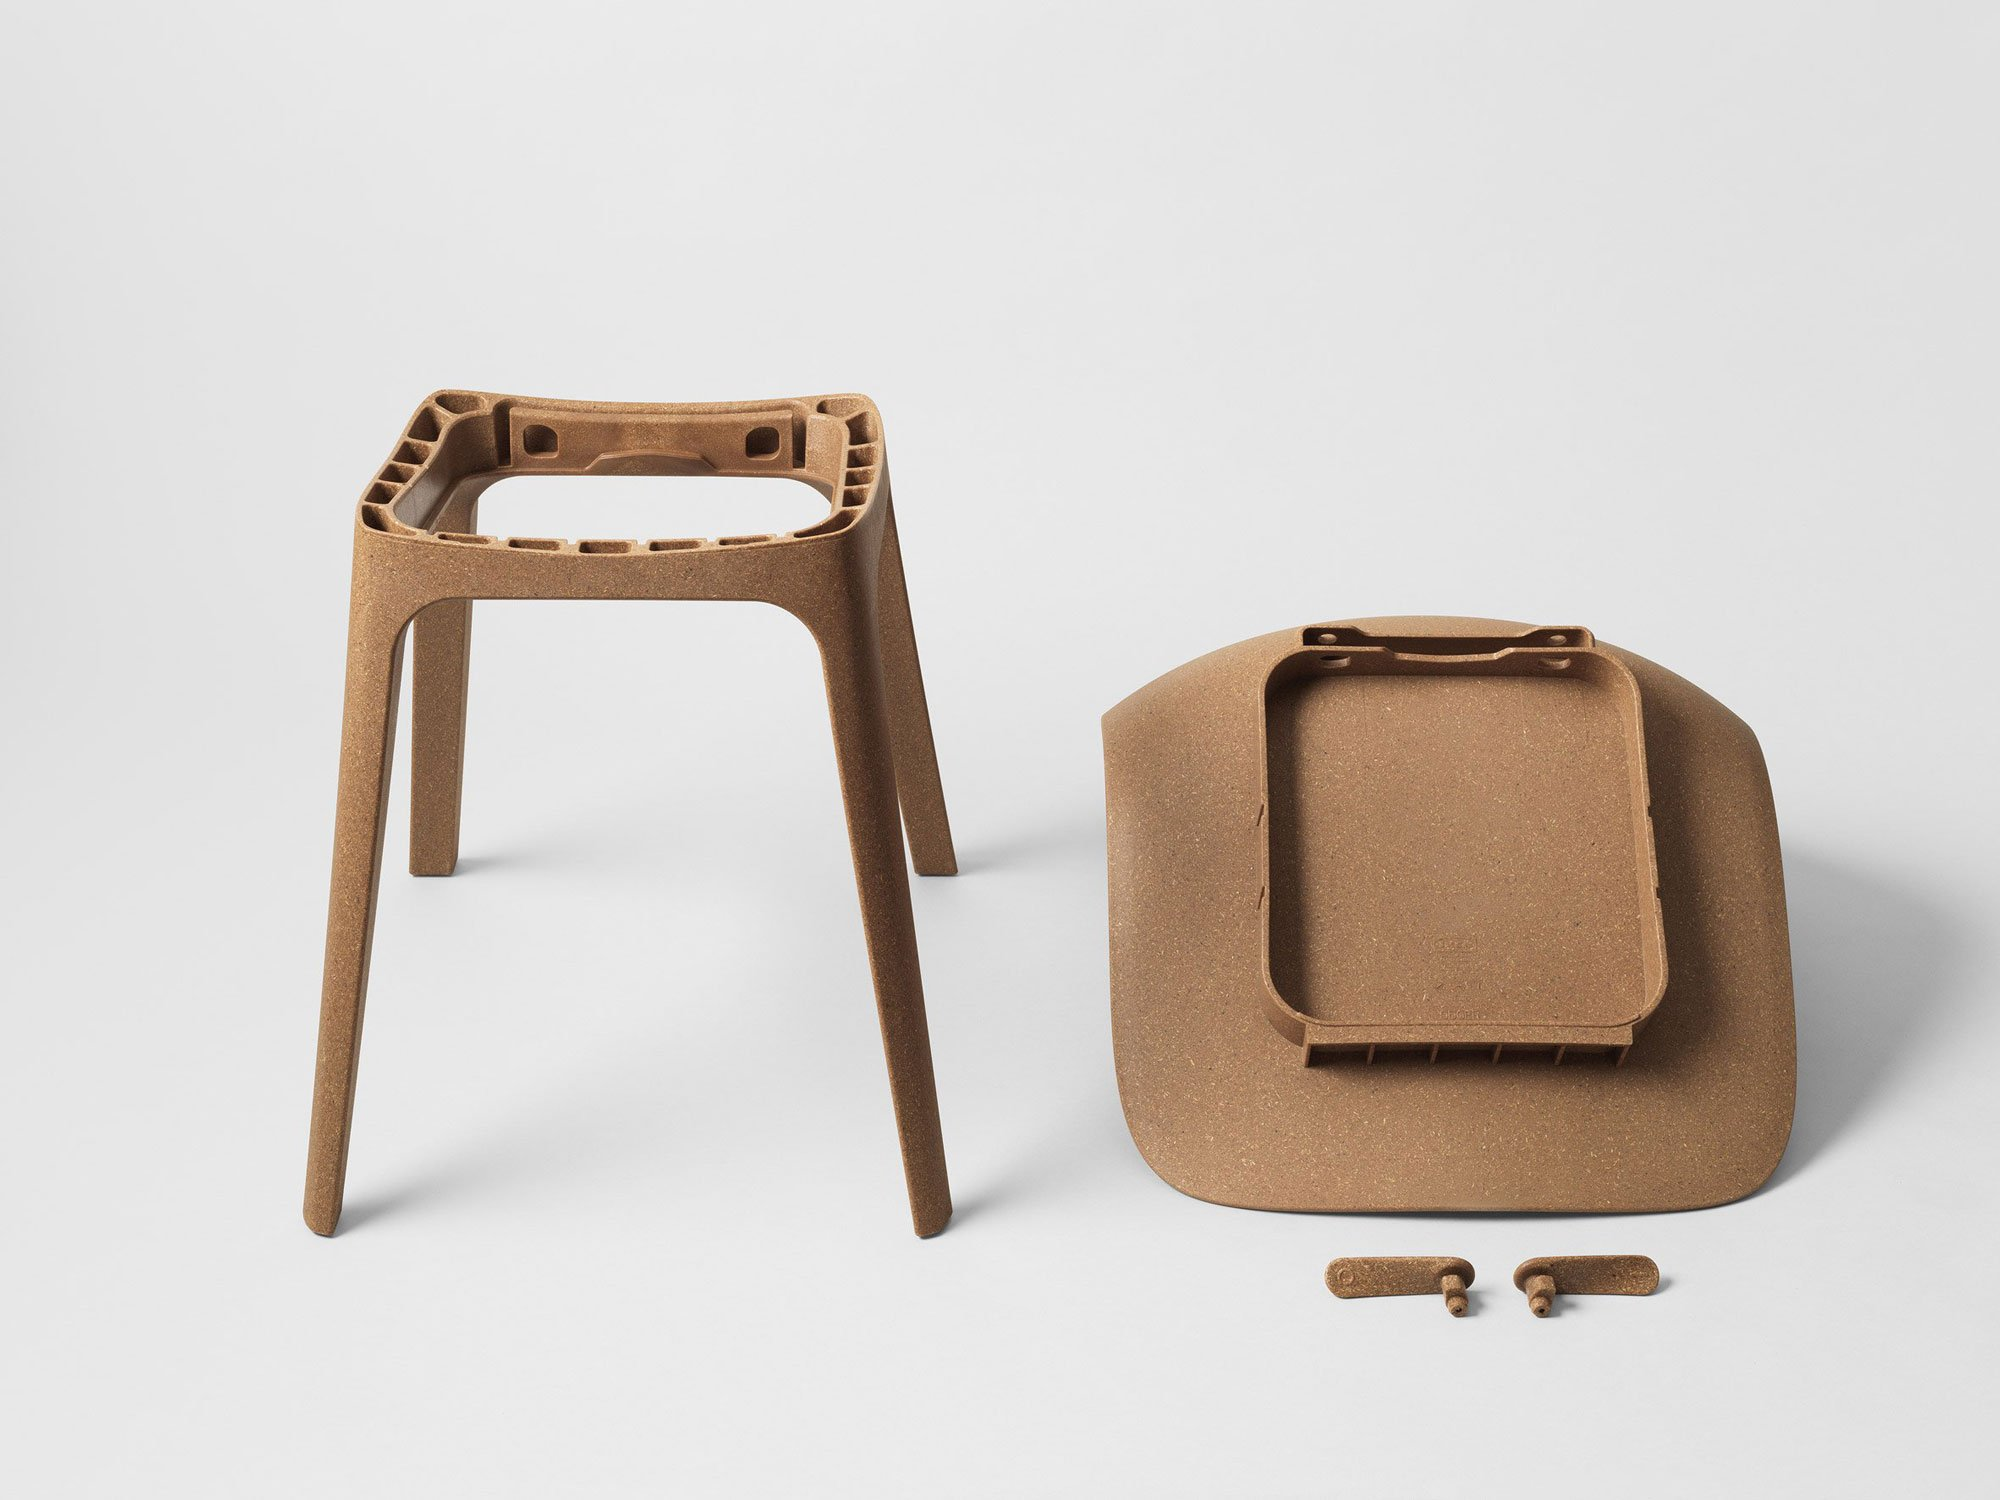 Eco friendly chairs odger designed by form us with love for ikea